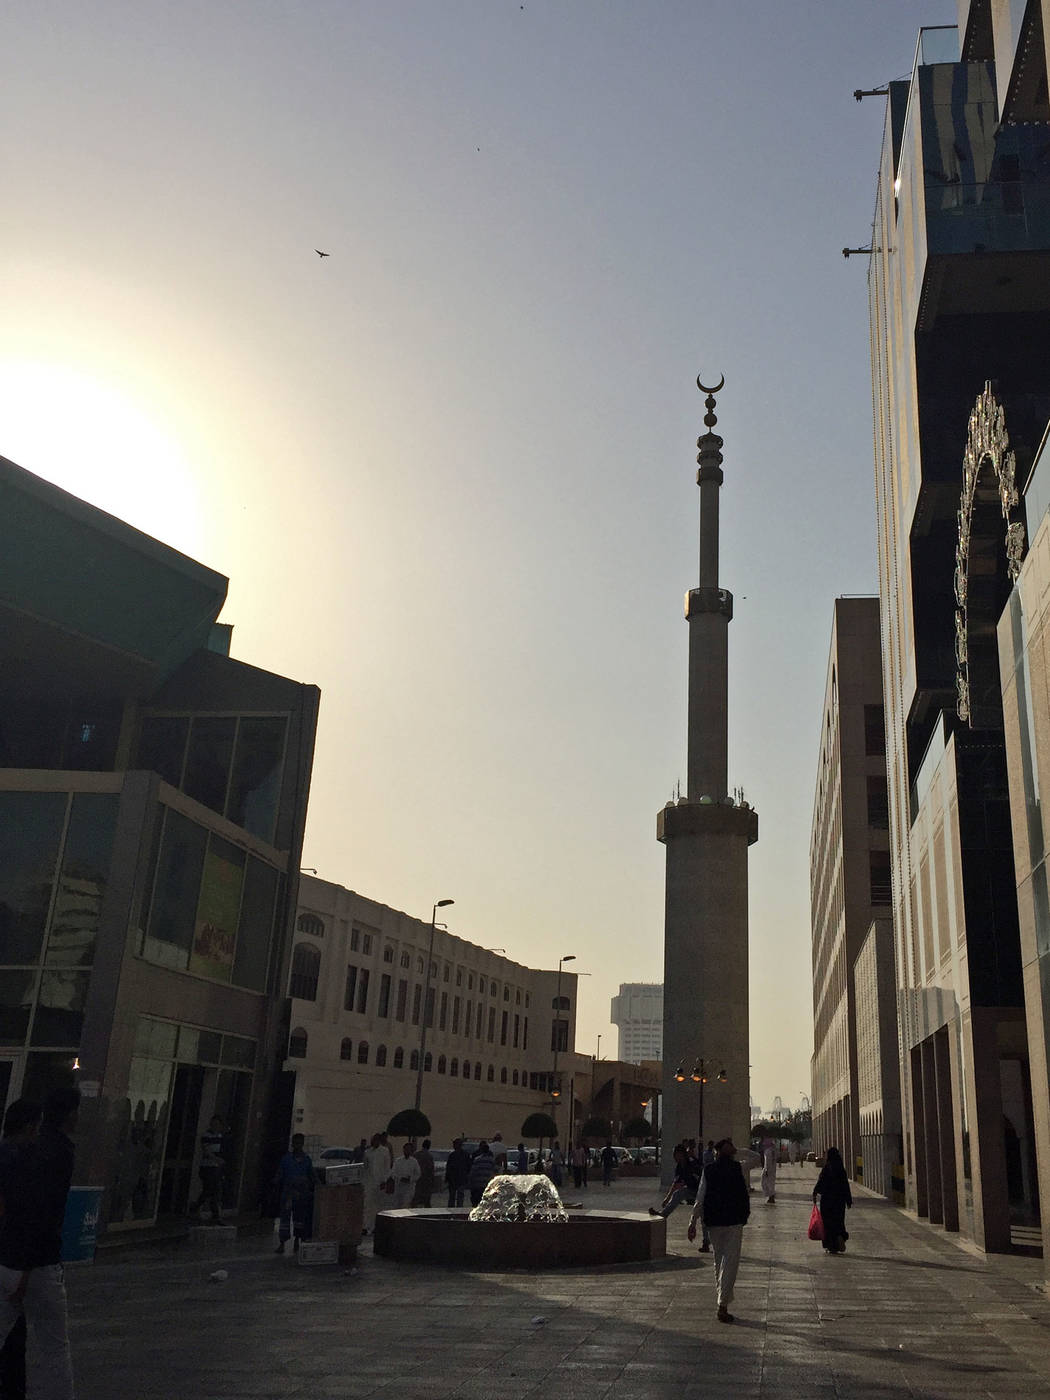 I went to Saudi Arabia alone and here's what I found there.